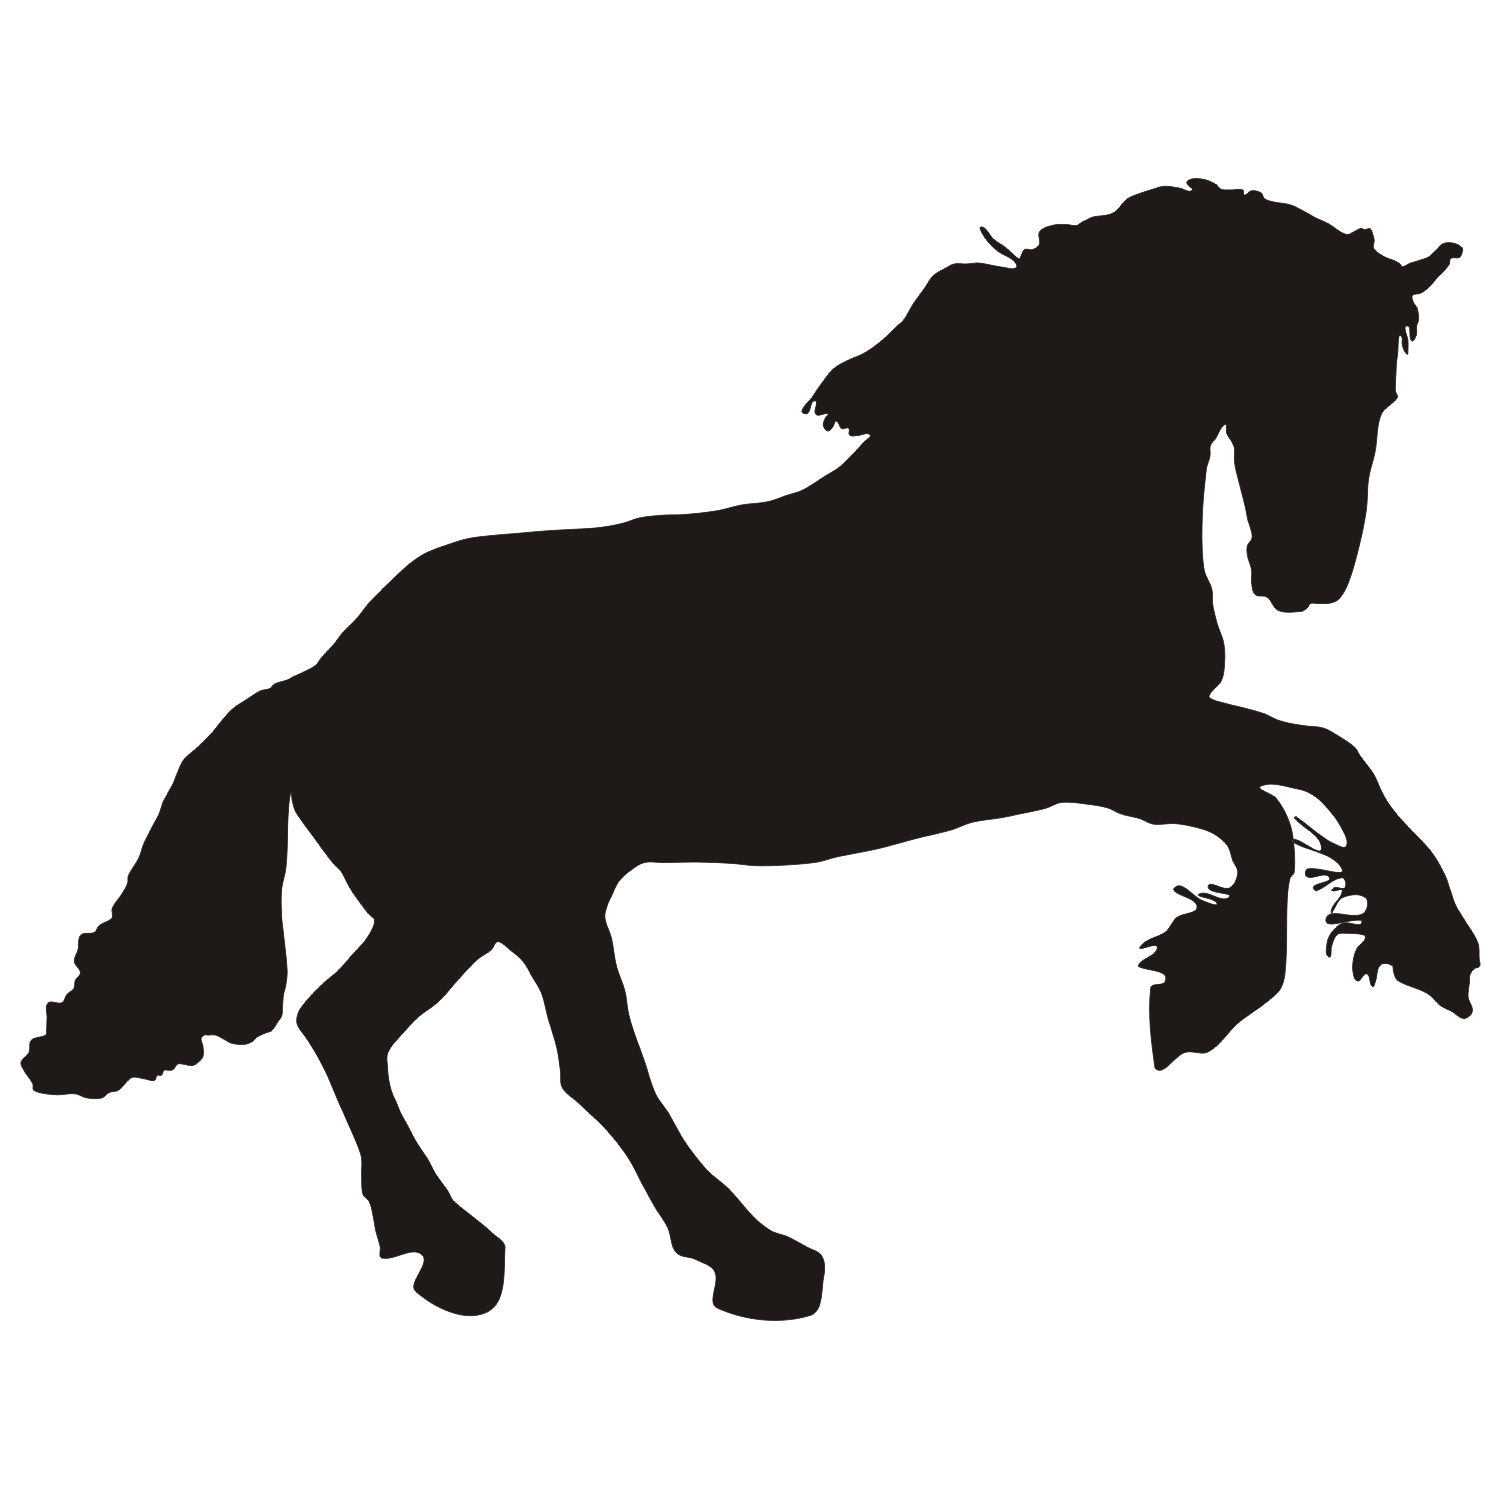 horse silhouettes free vector - photo #9